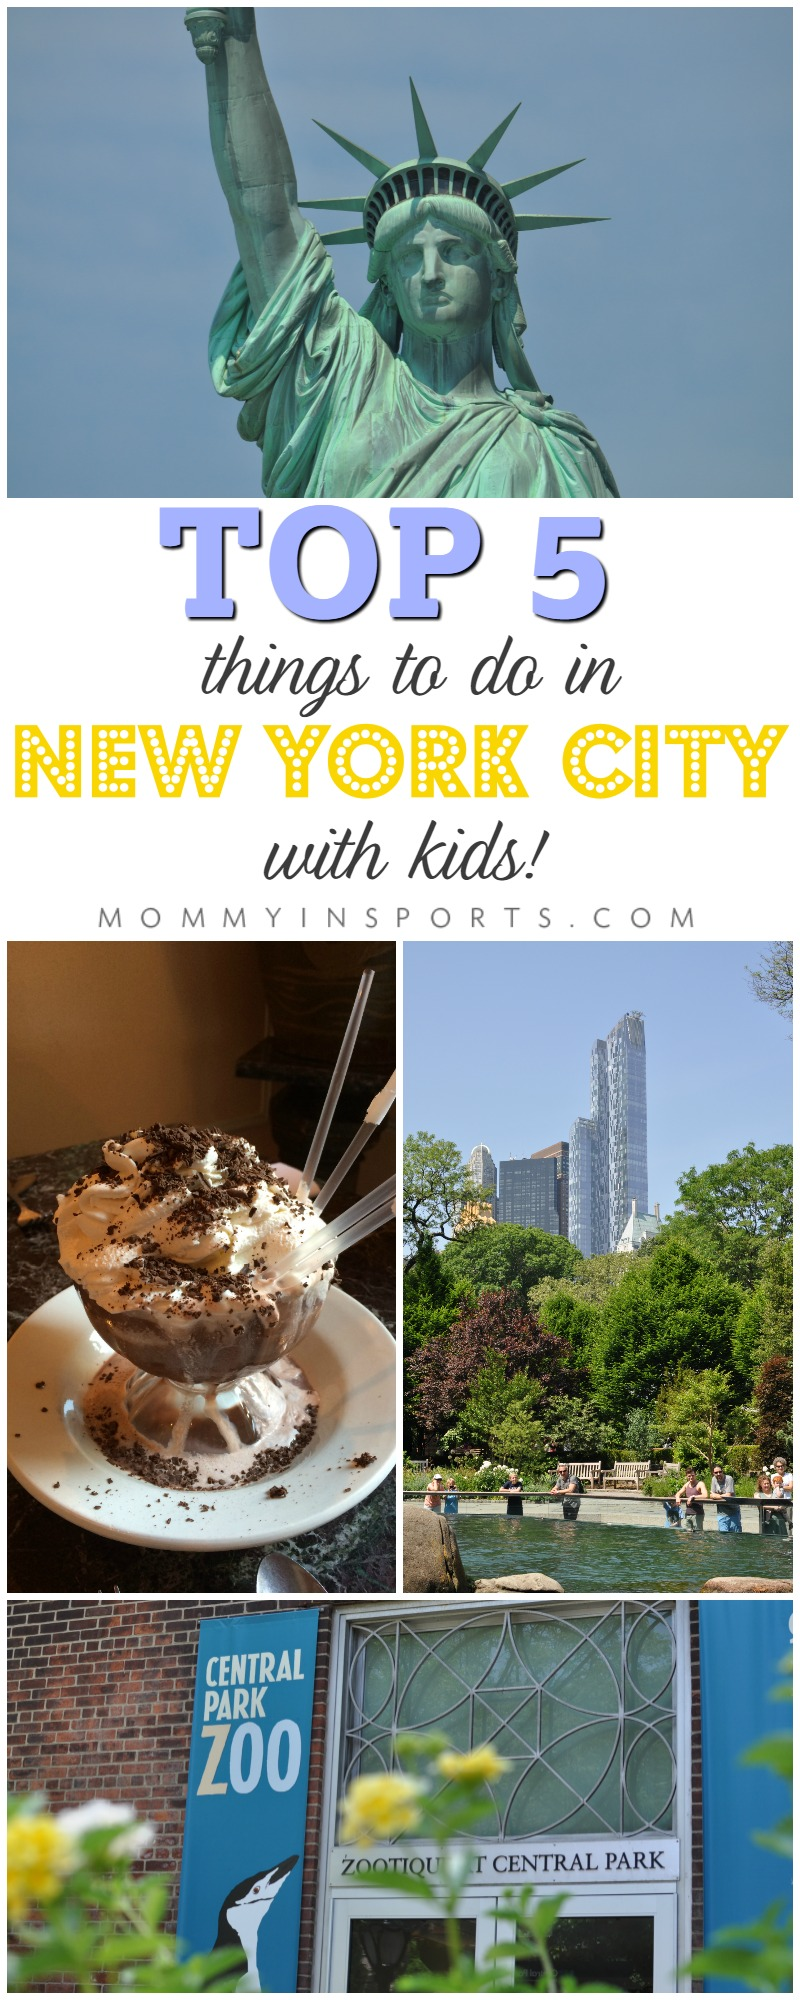 Top 5 things to do in new york city with kids kristen hewitt for Things to do new york today